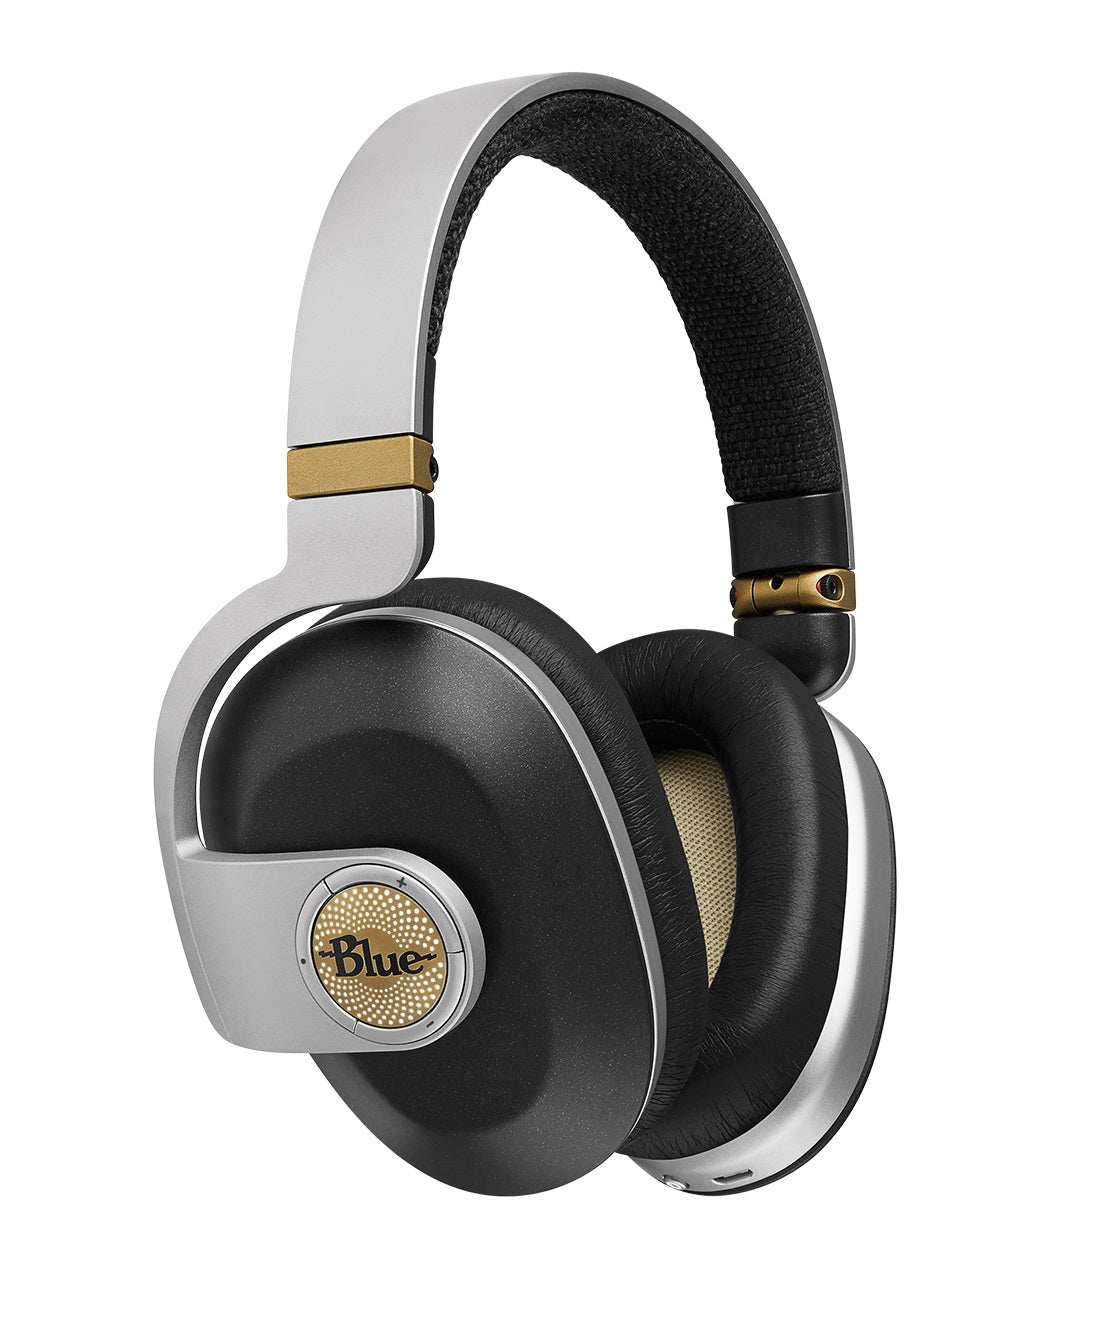 Blue Microphones Satellite Noise-Cancelling Headphones